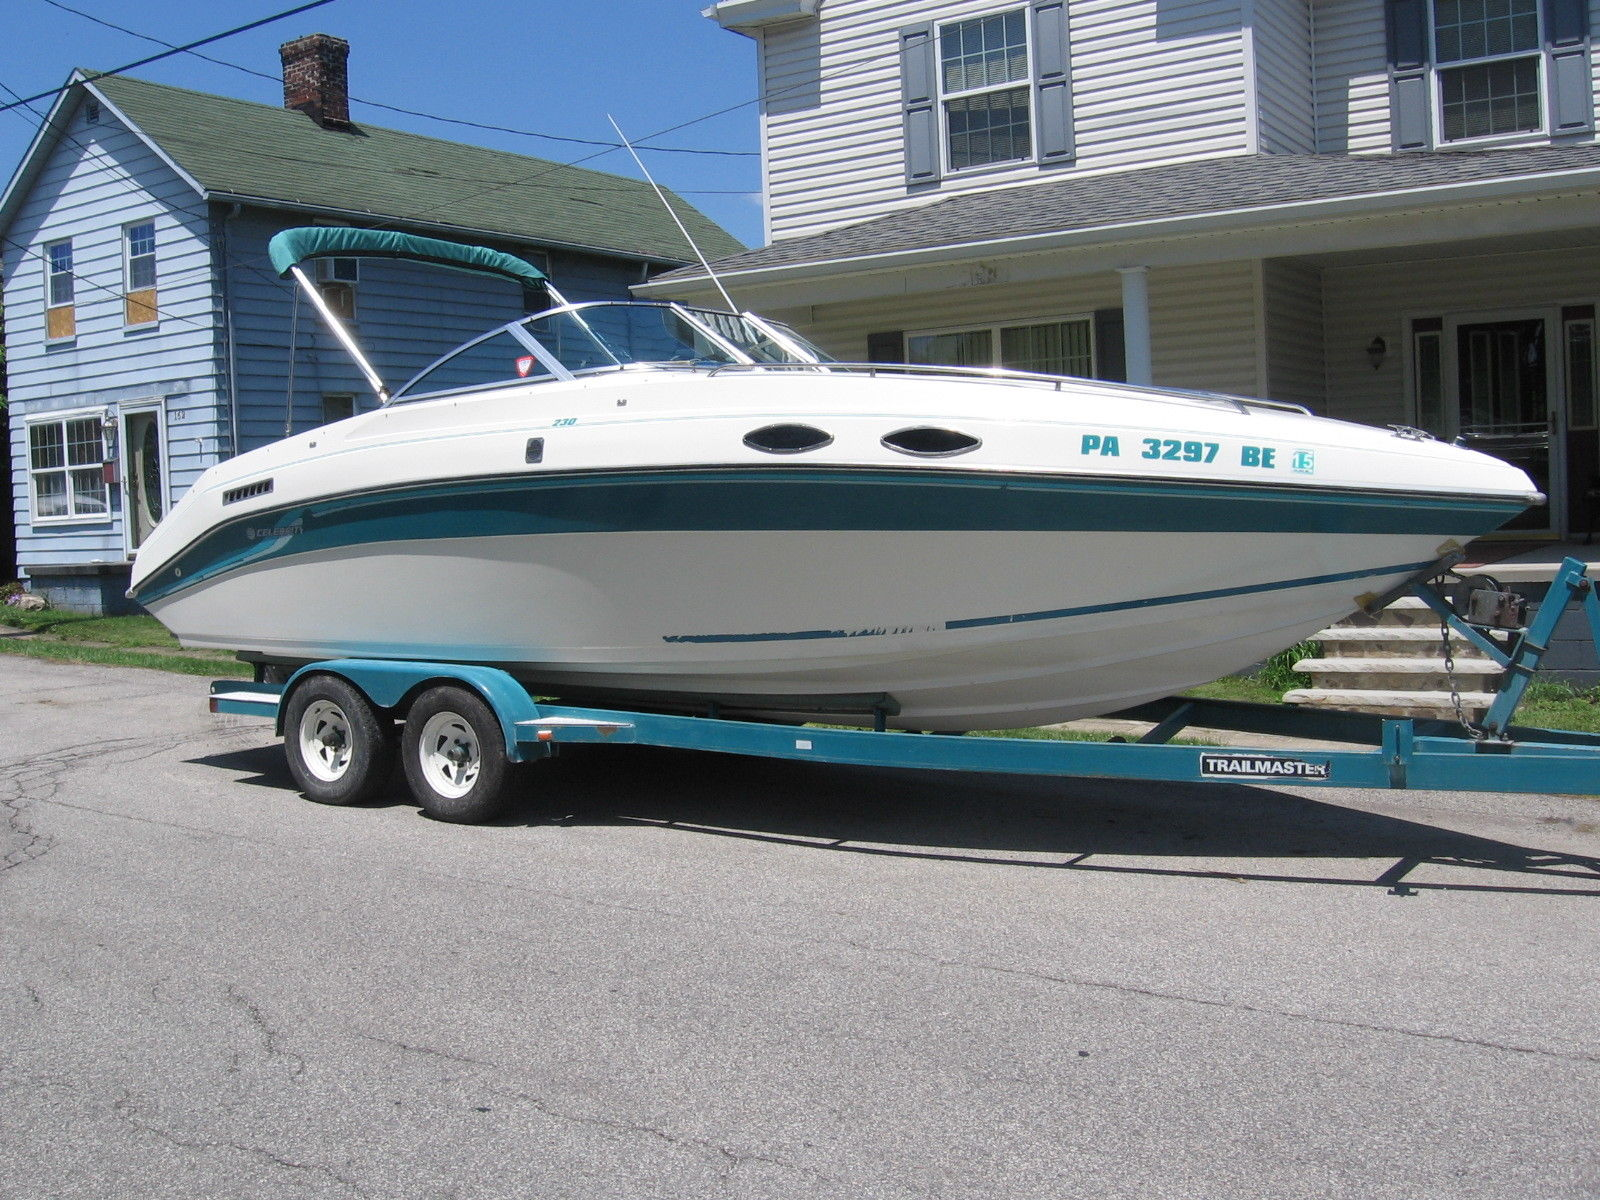 1989 Sea Ray 260 Cuddy w/ Mercruiser 7.4L V8 454 cu in ...